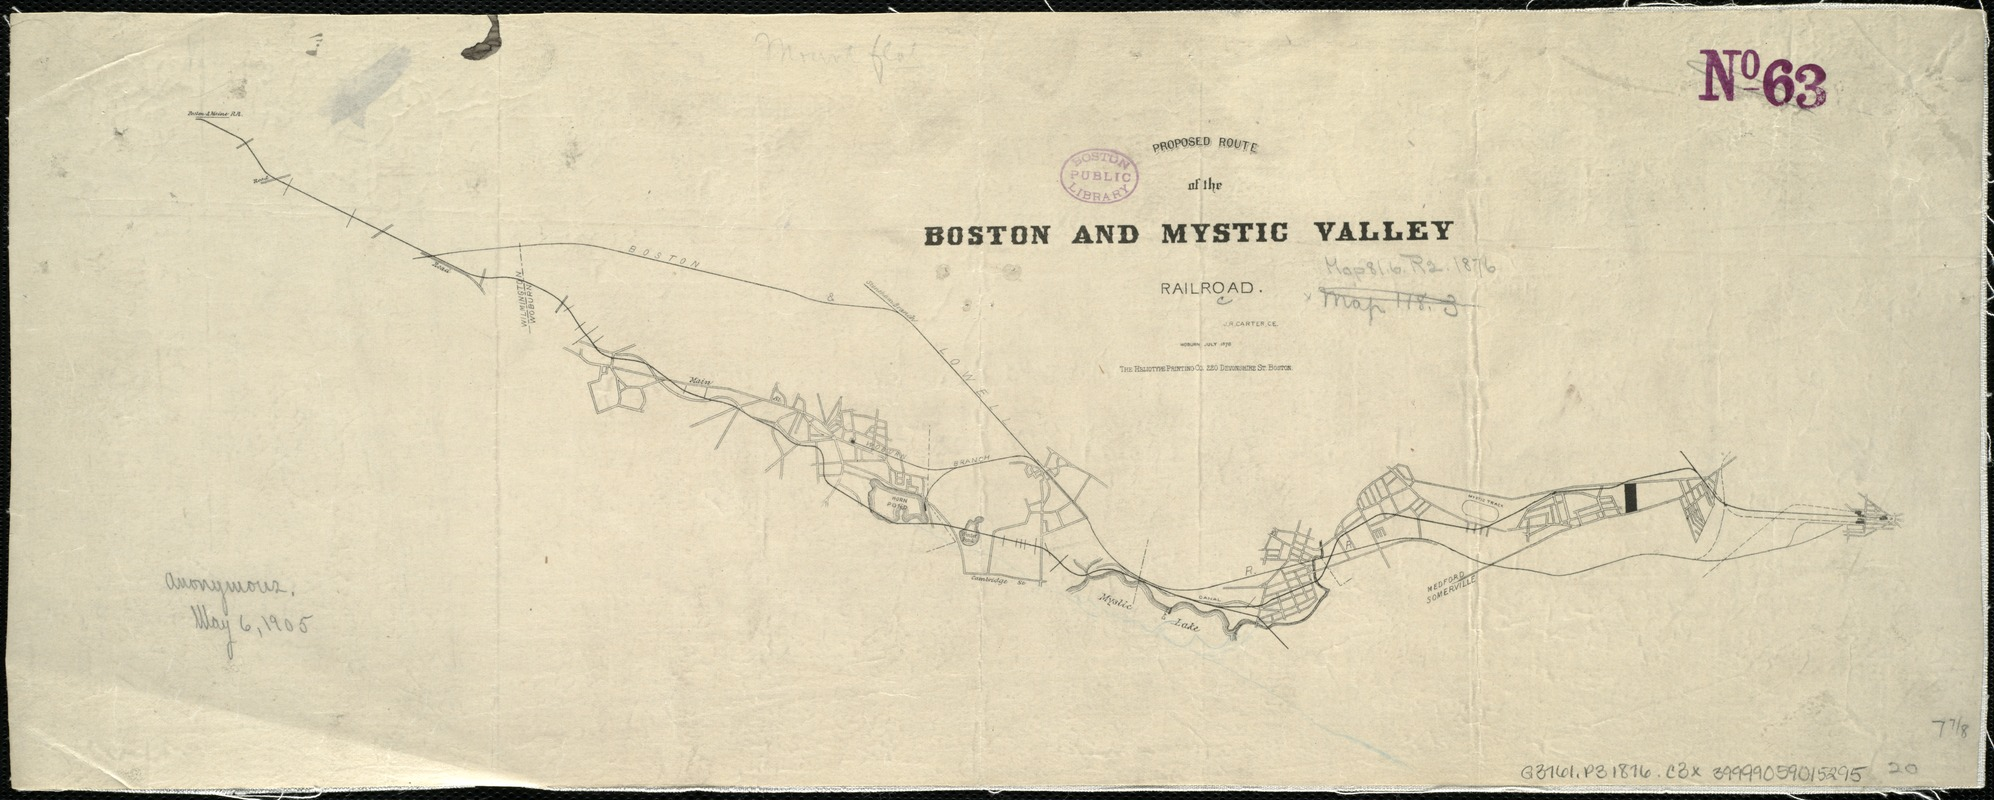 Proposed route of the Boston and Mystic Valley railroad